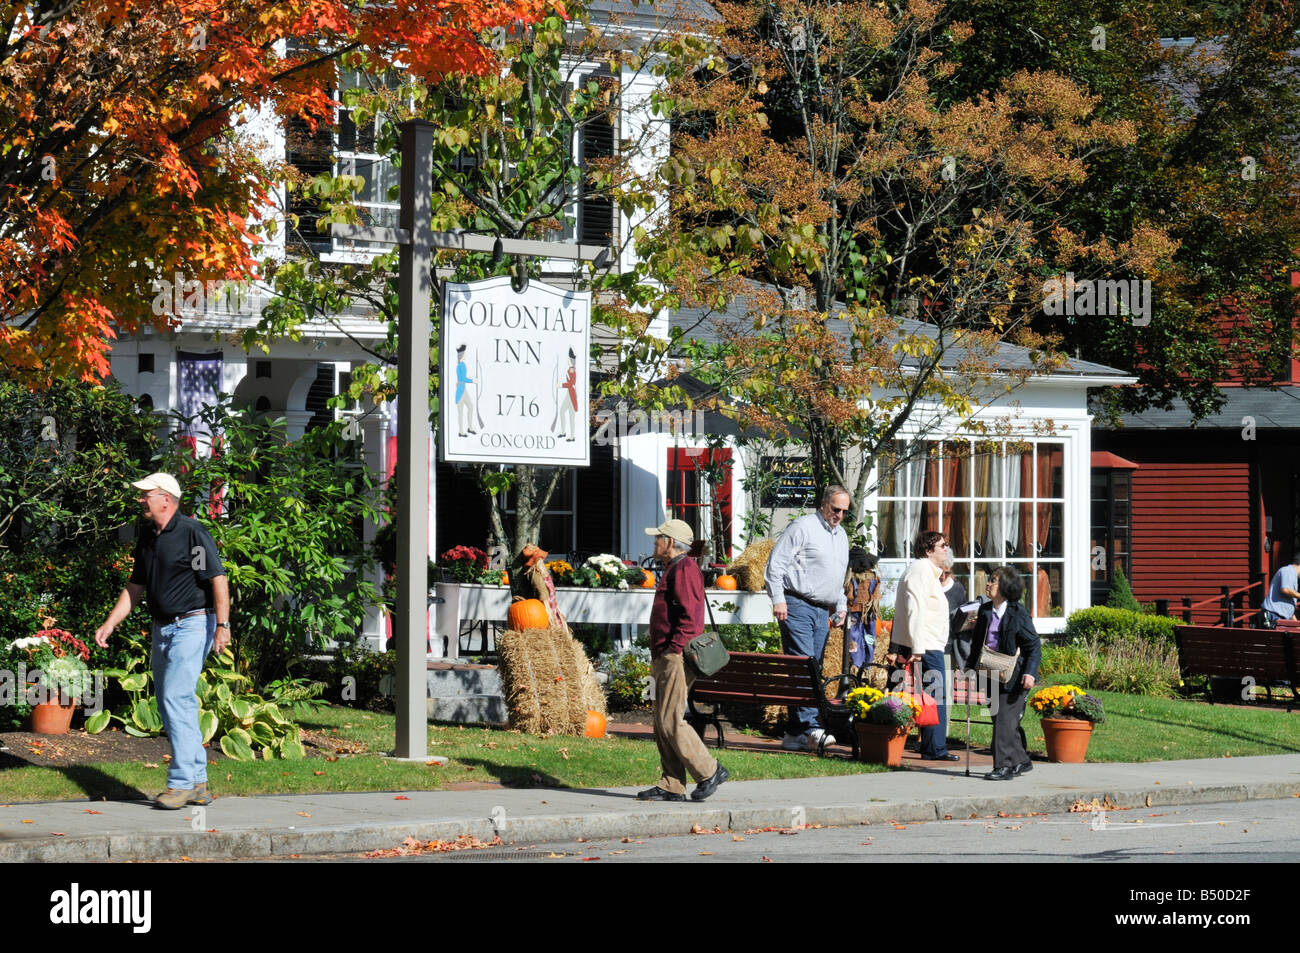 Colonial Inn, circa 1716 in Historic Concord Massachusetts in fall with people, pumpkins, sign and building - Stock Image